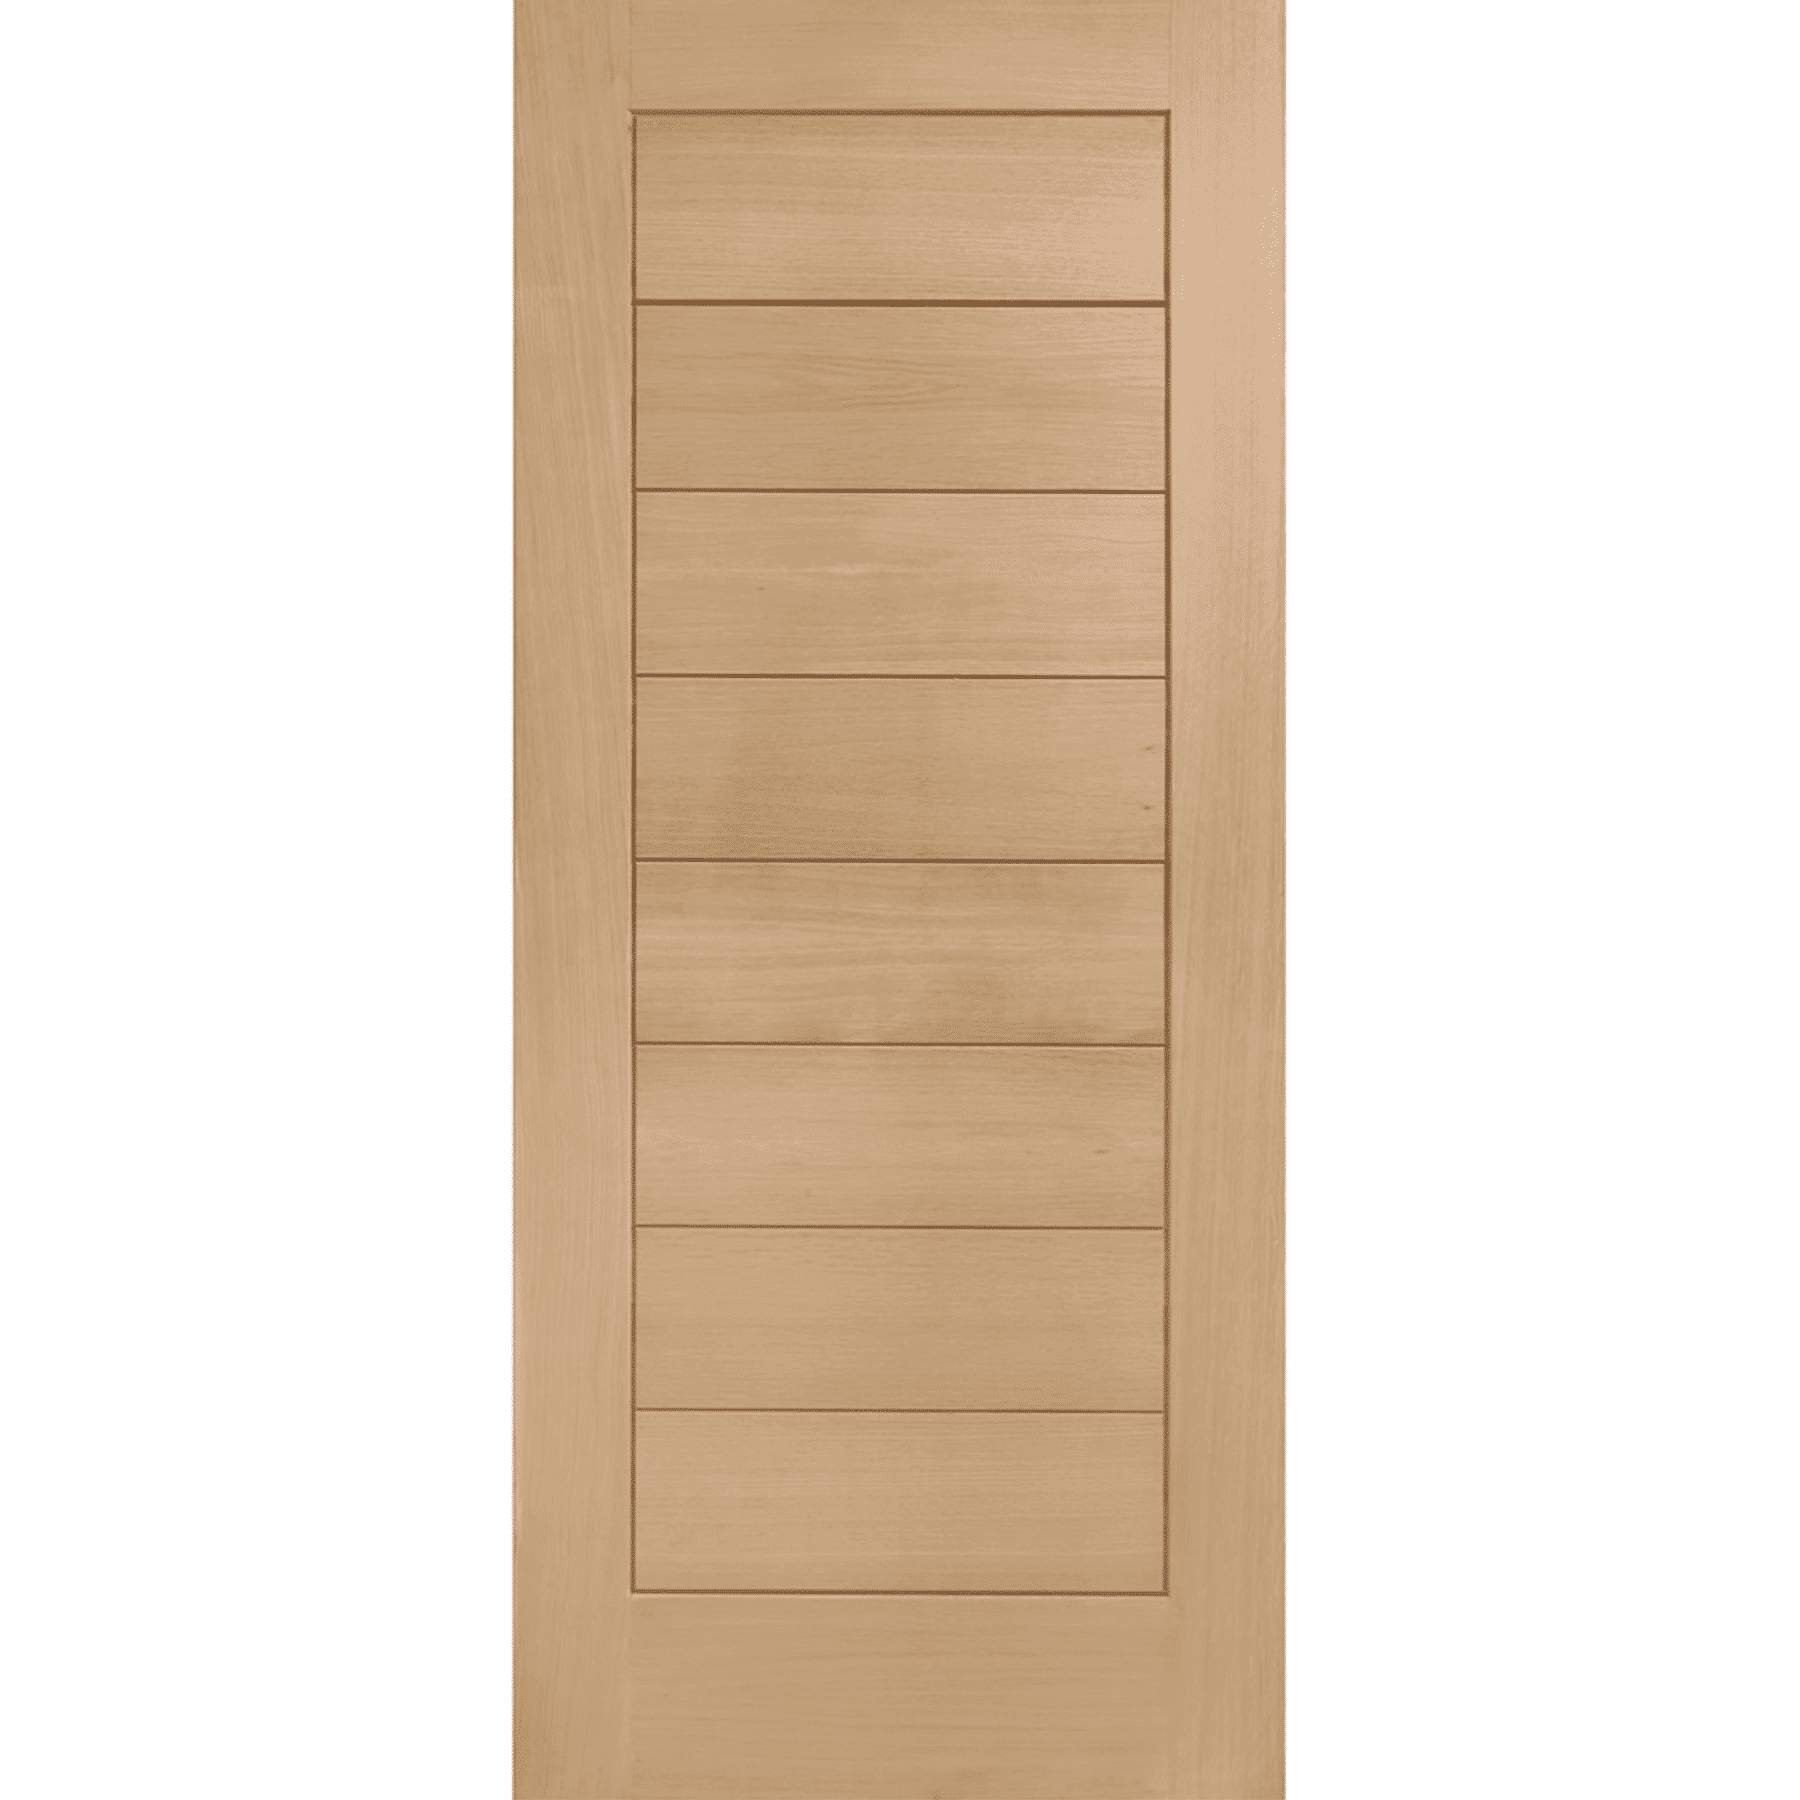 Modena Oak External Door